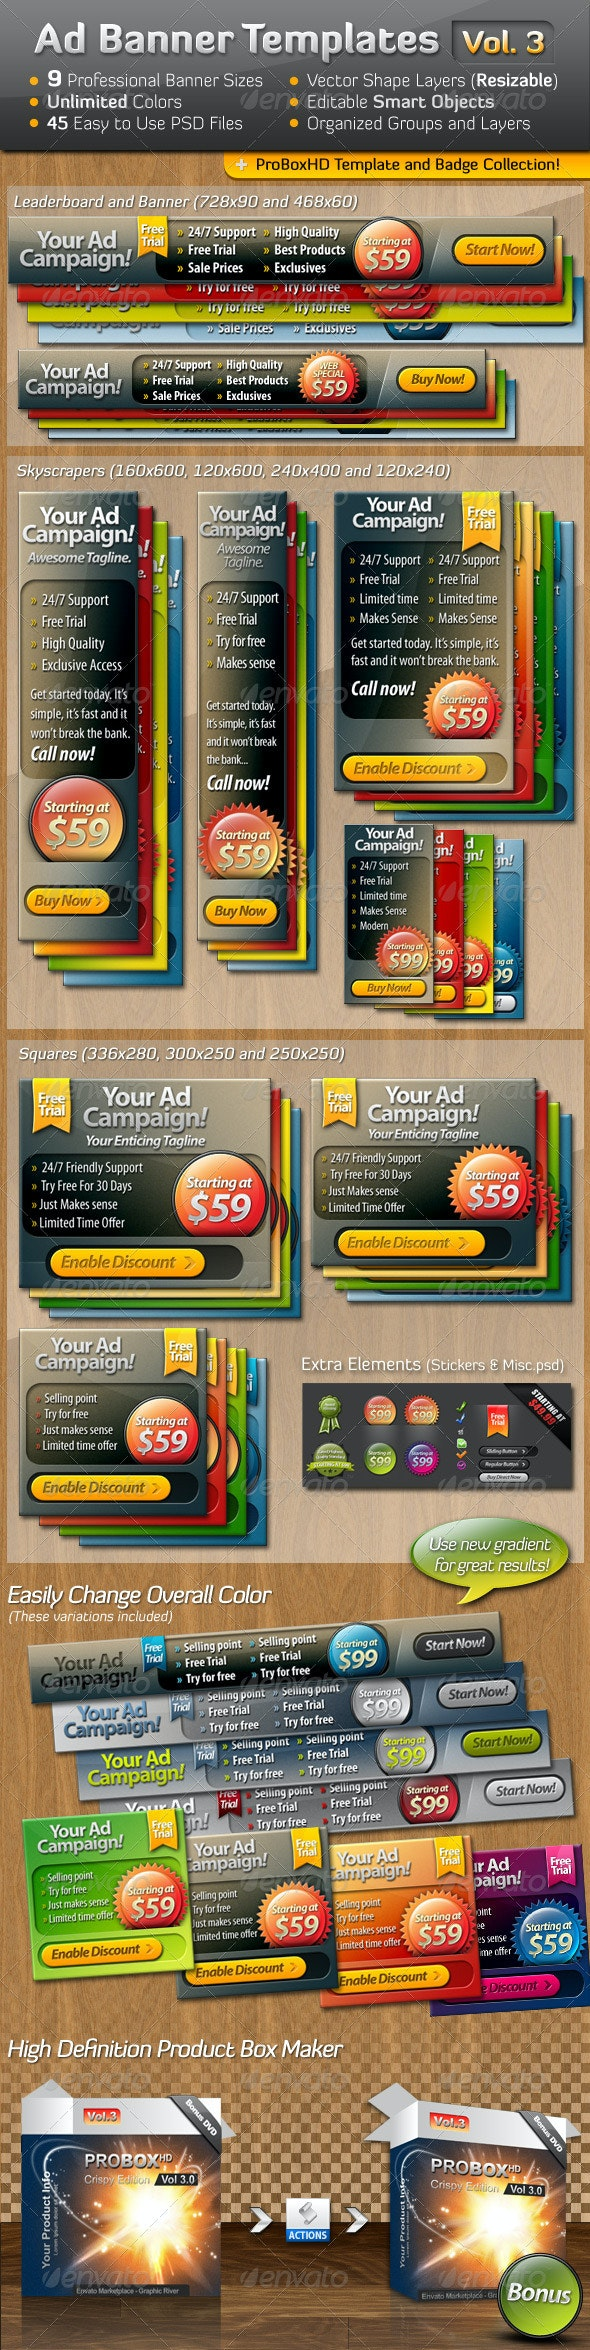 Ad Banner Template Collection Vol. 3 - Banners & Ads Web Elements